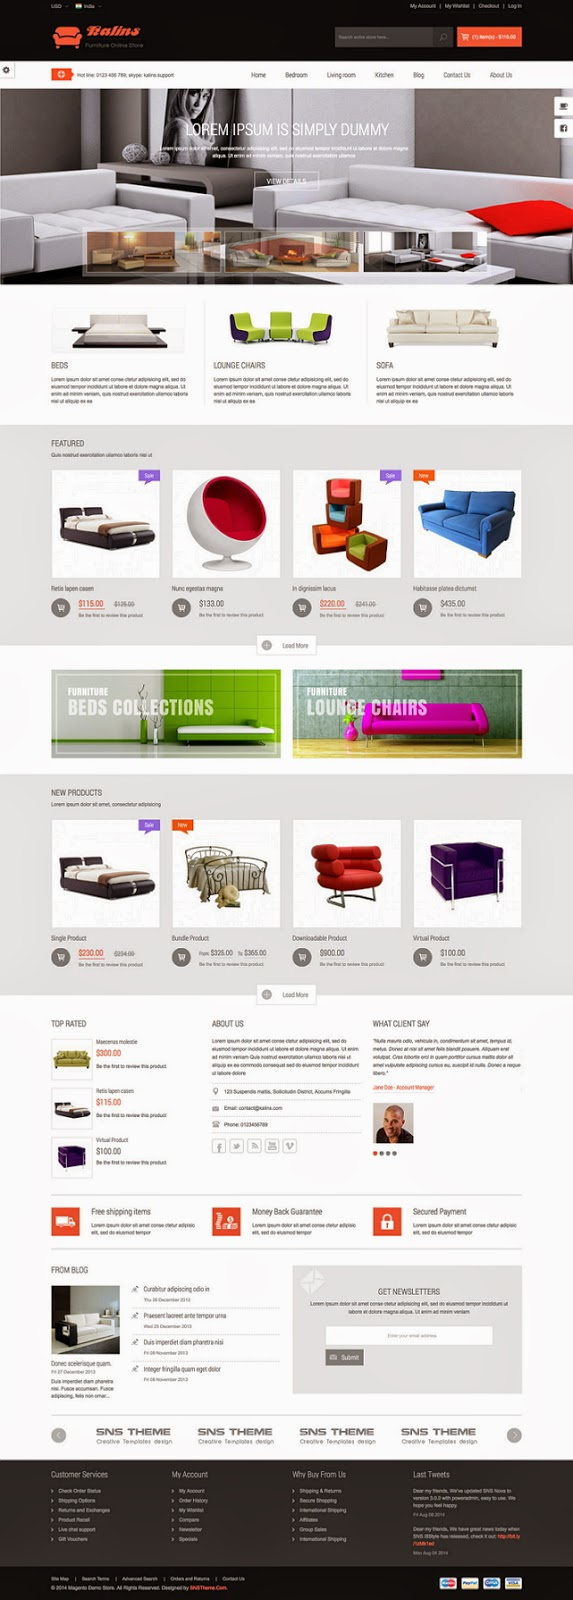 Best eCommerce Theme